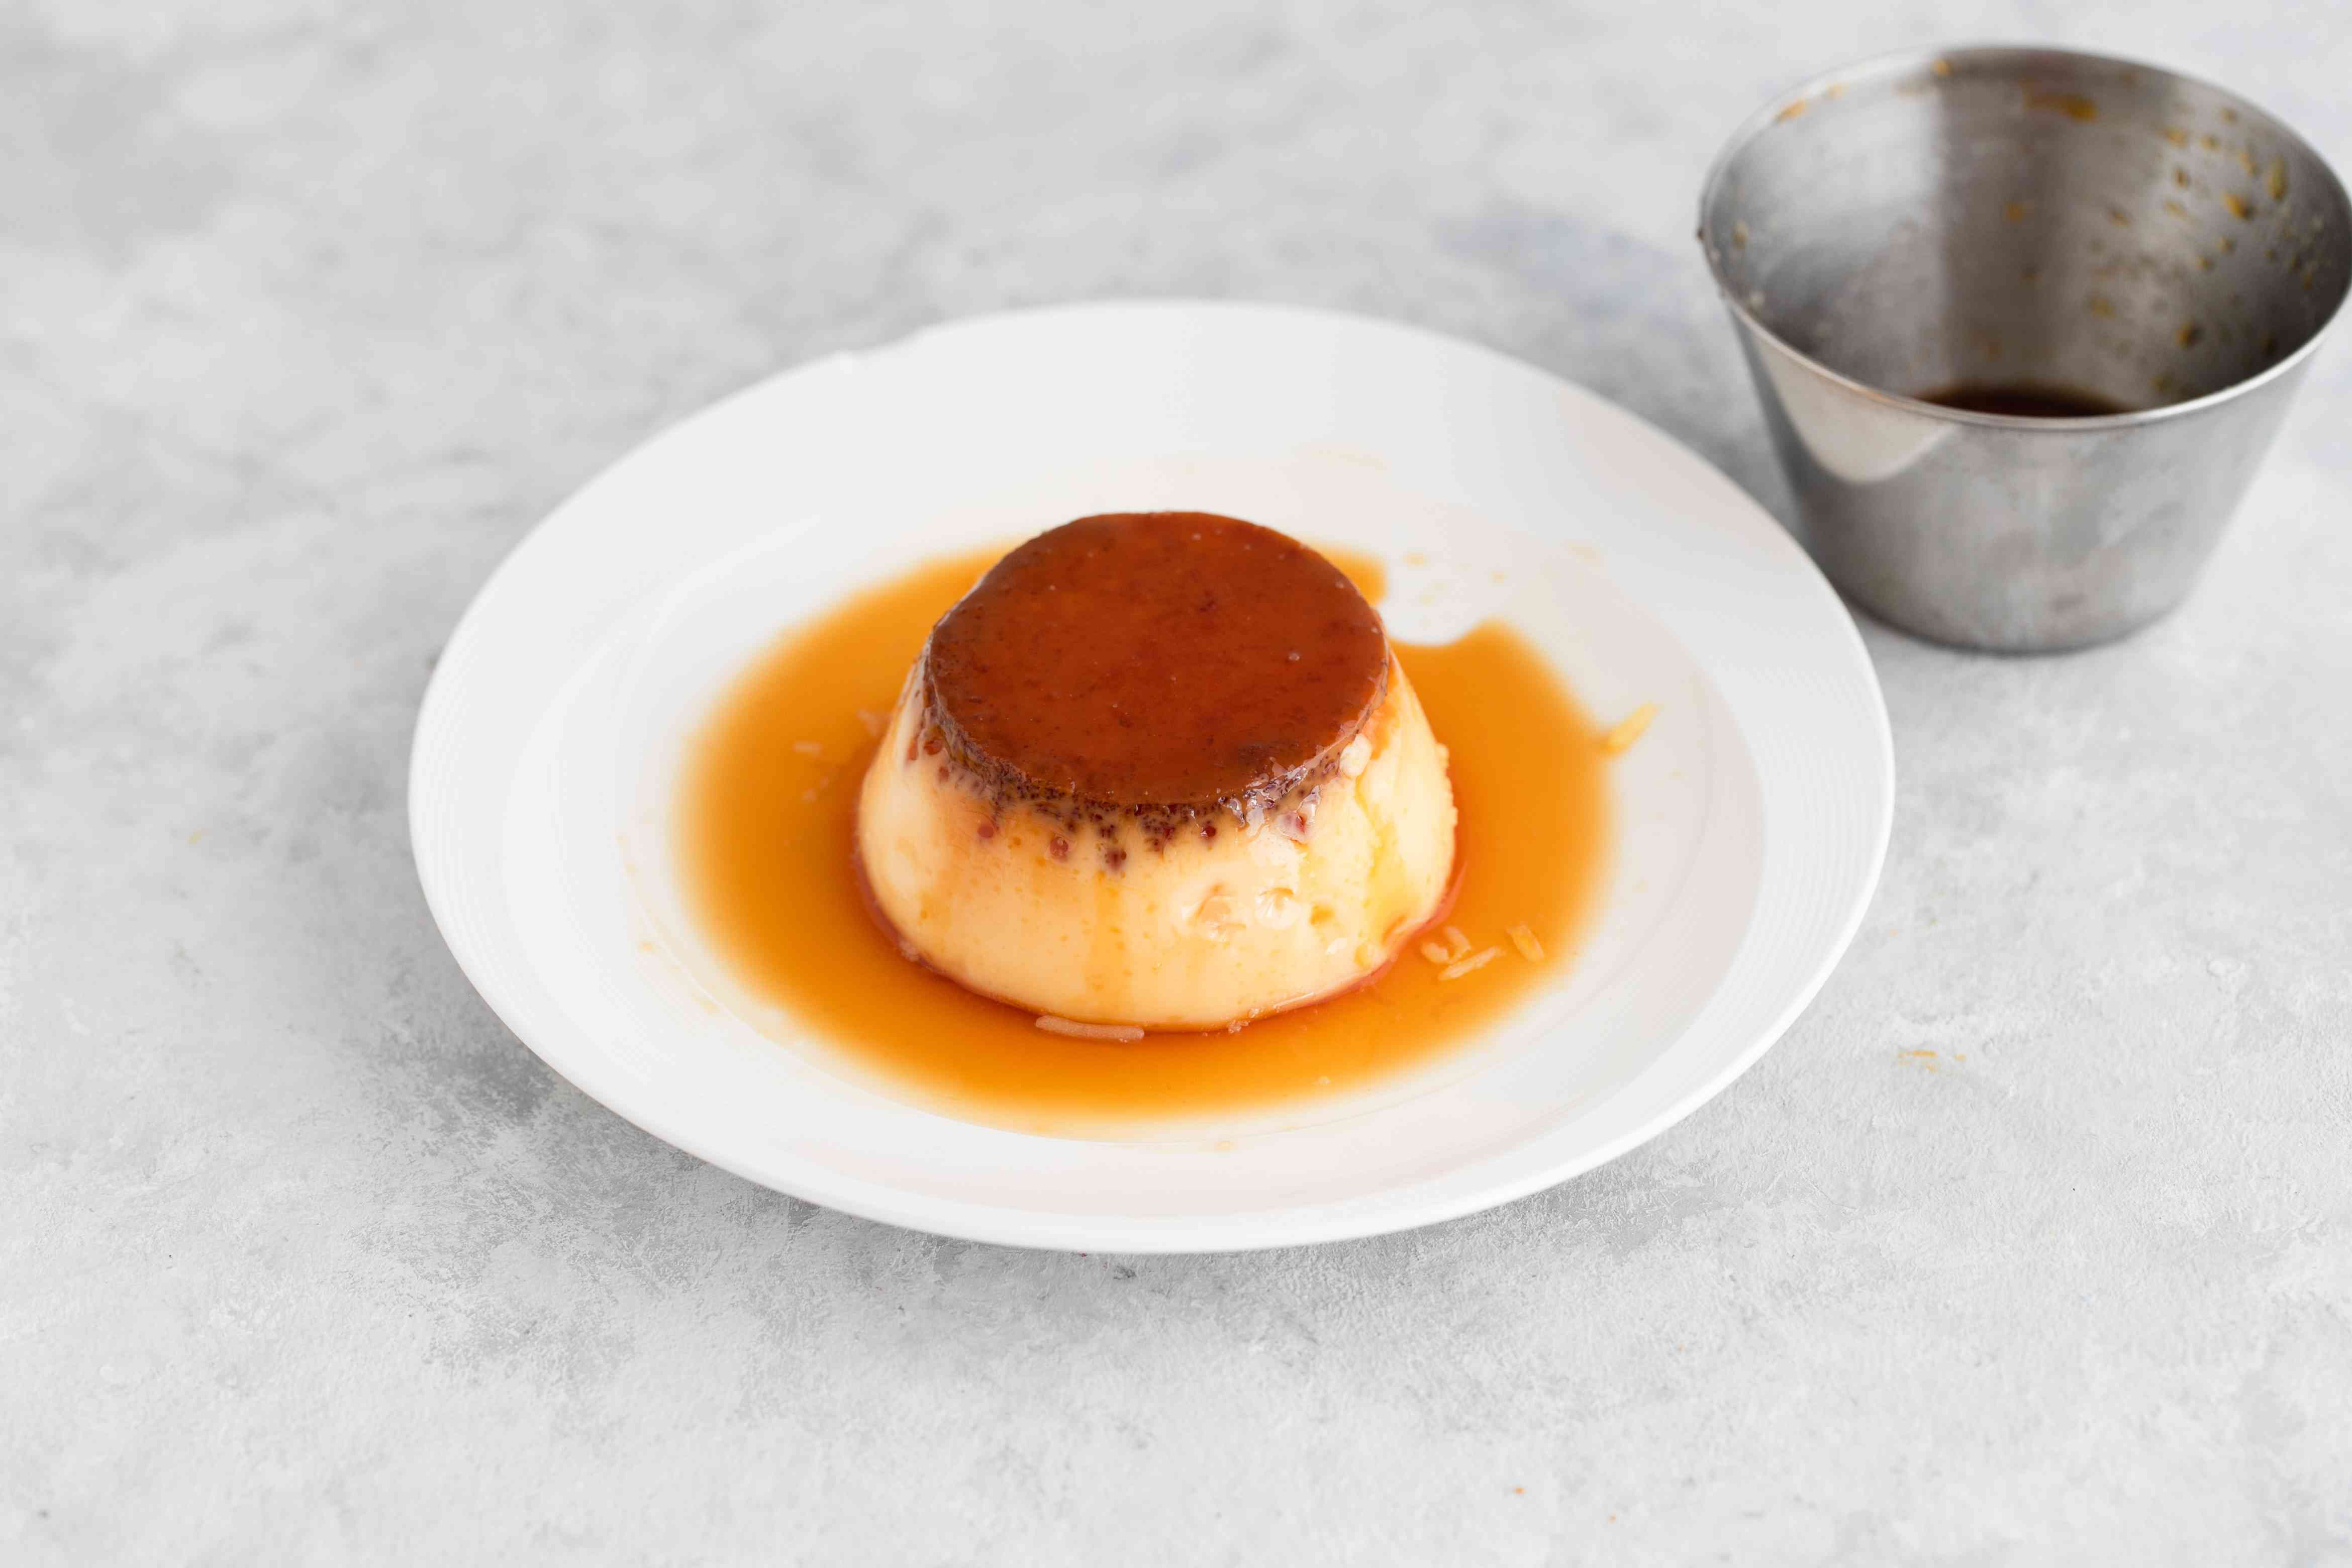 Remove from molds and enjoy Purin, Japanese custard pudding